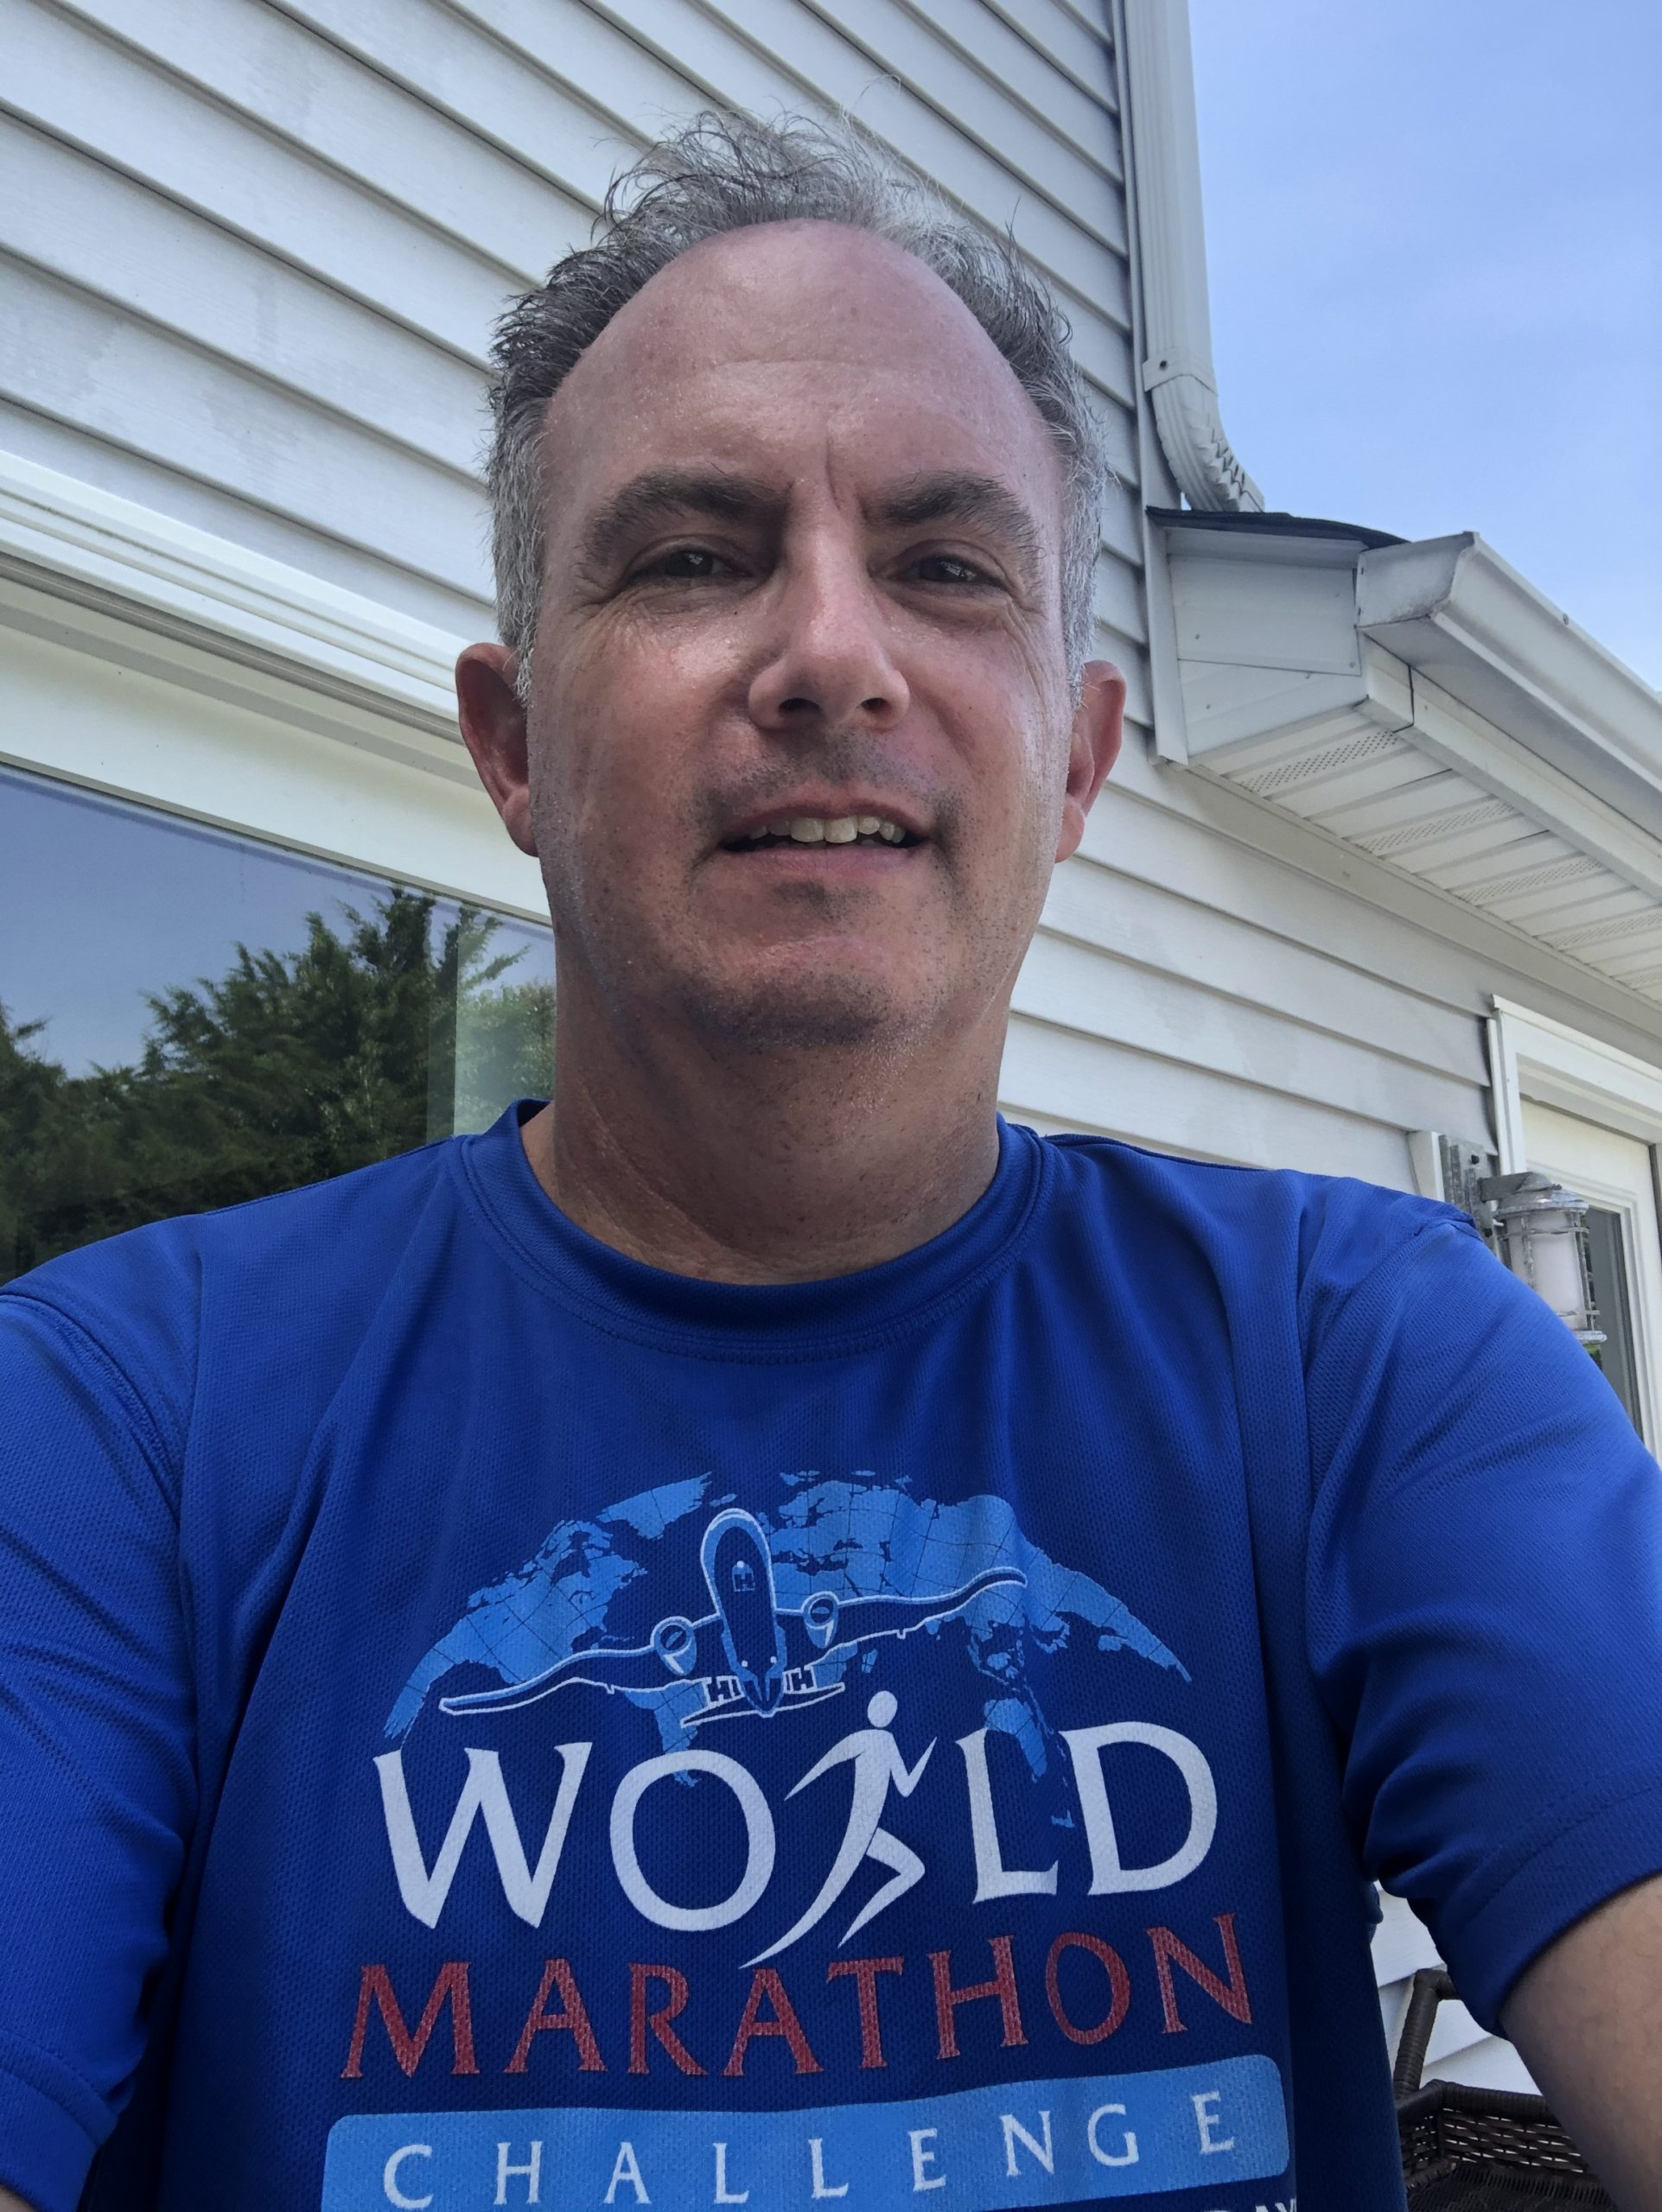 Bret Parker, who completes a physical feat every year to raise money for Parkinson's disease research, challenged himself with the Calendar Club in July 2020.